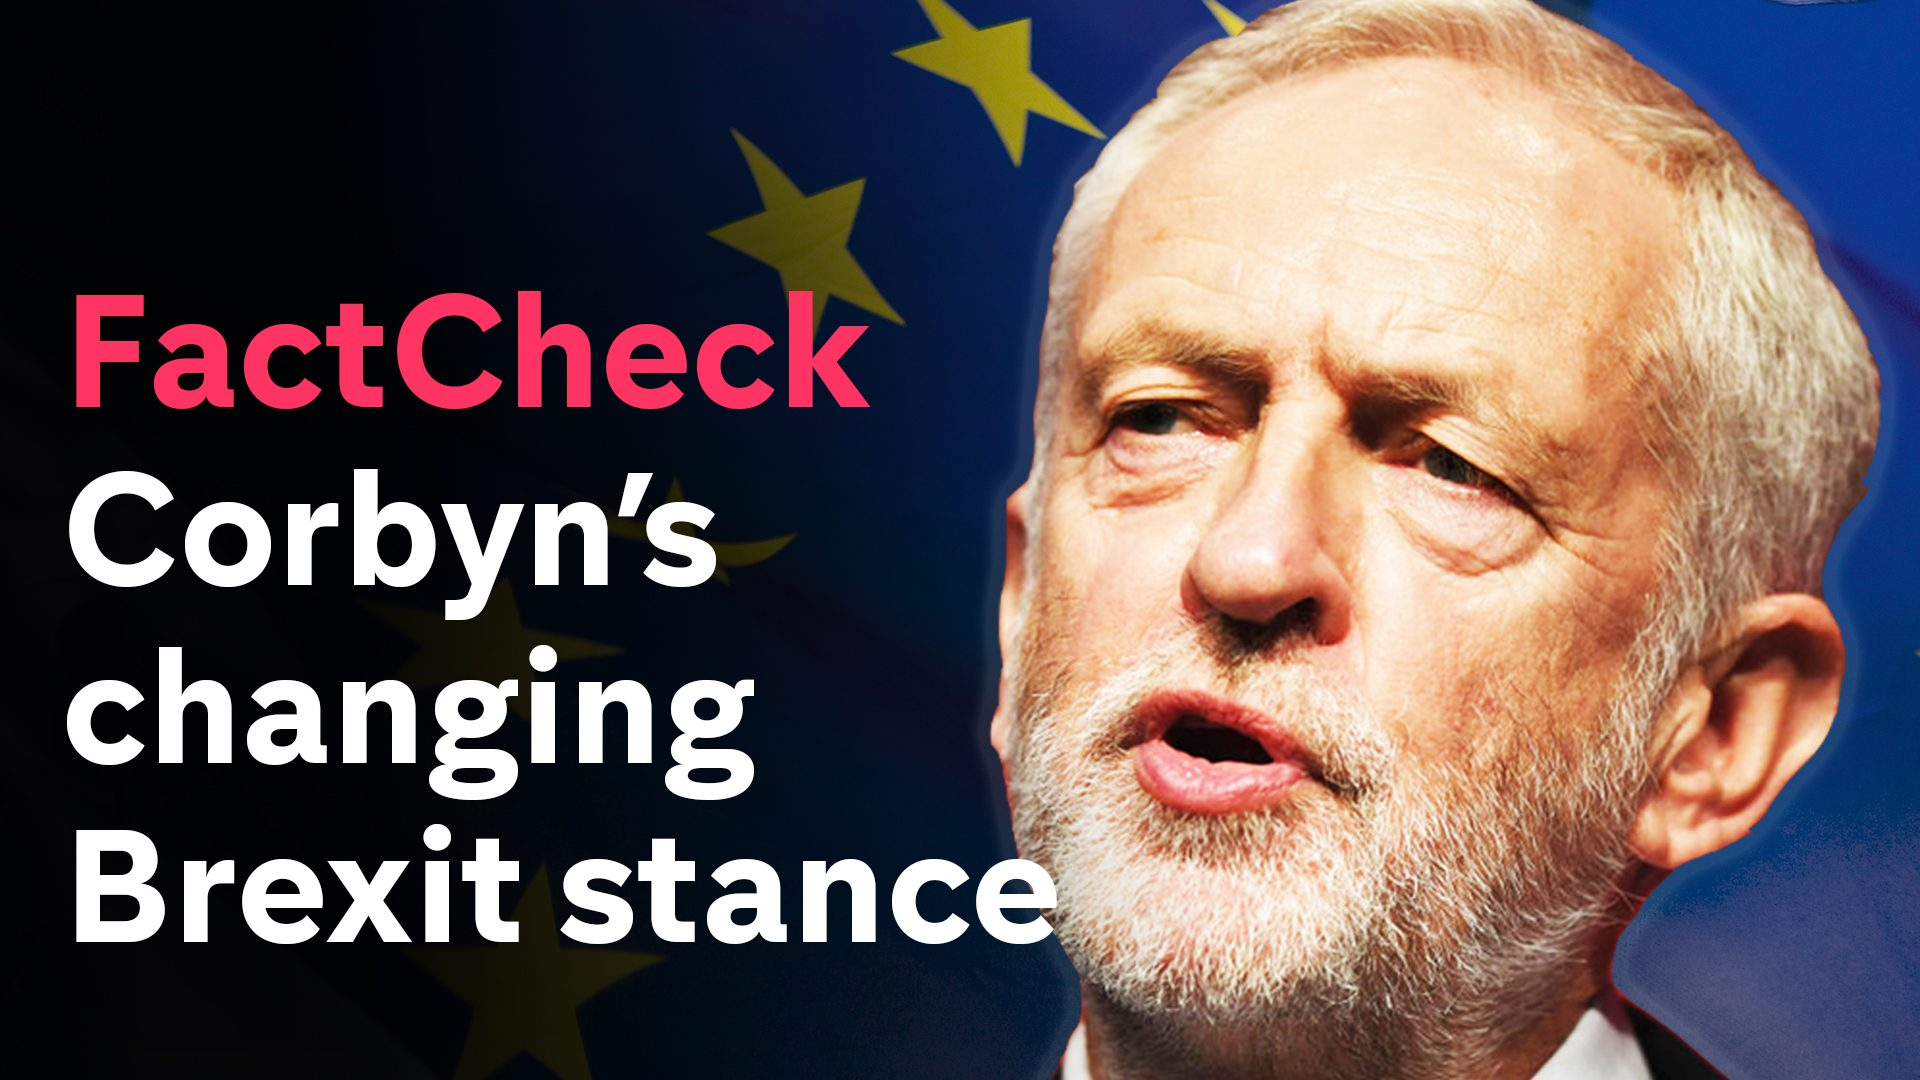 FactCheck: Corbyn's changing Brexit stance